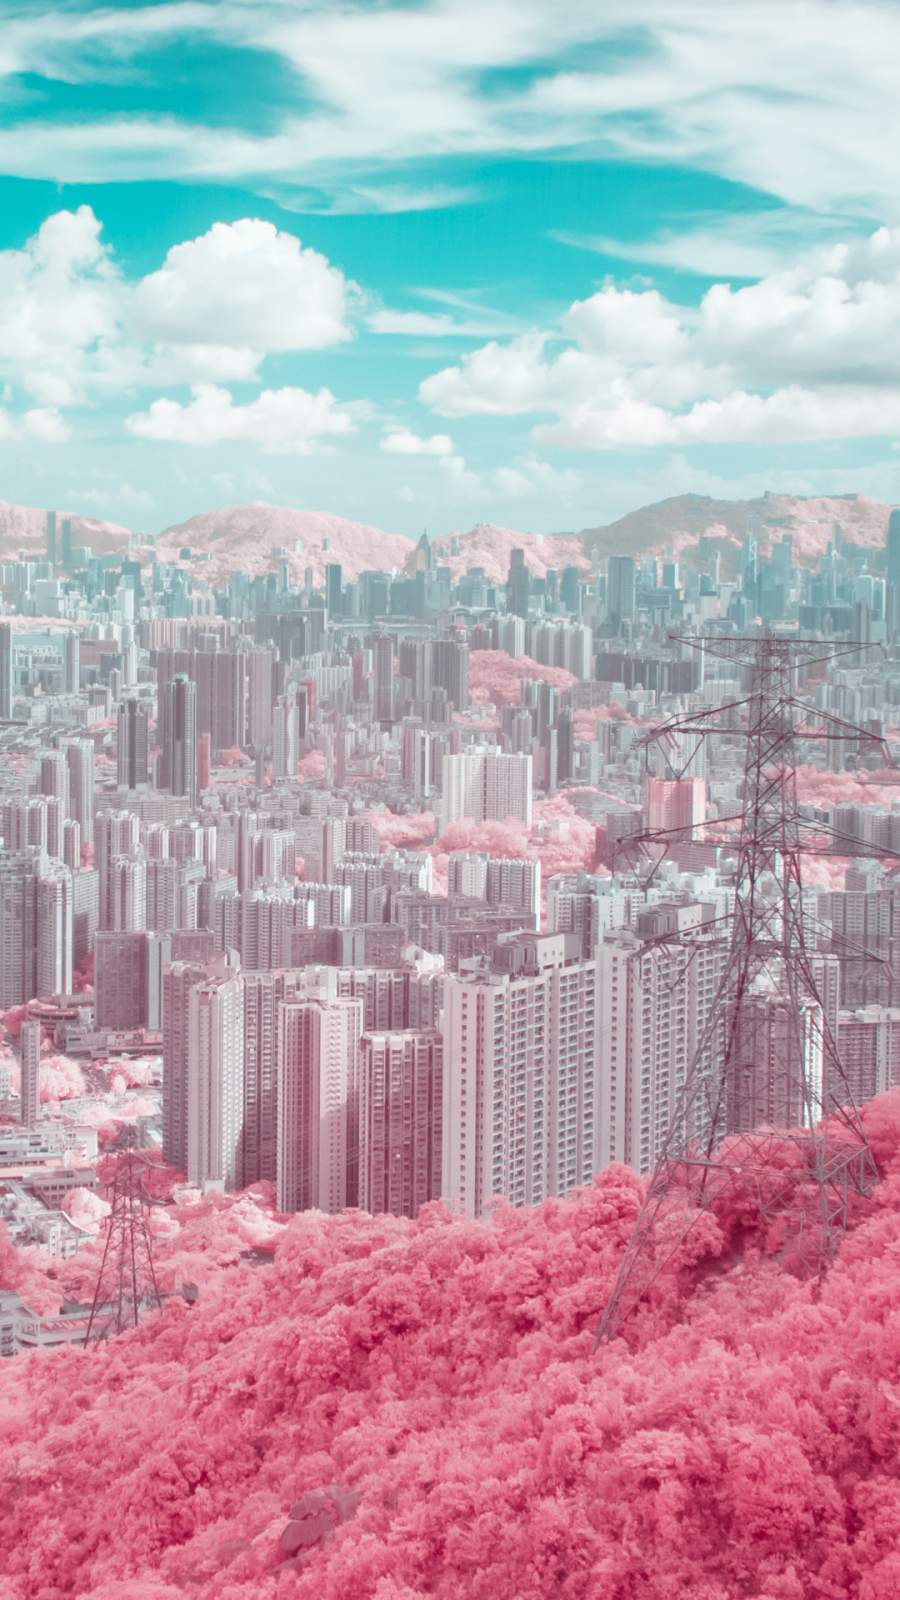 Anime City iPhone Wallpaper - iPhone Wallpapers : iPhone ...